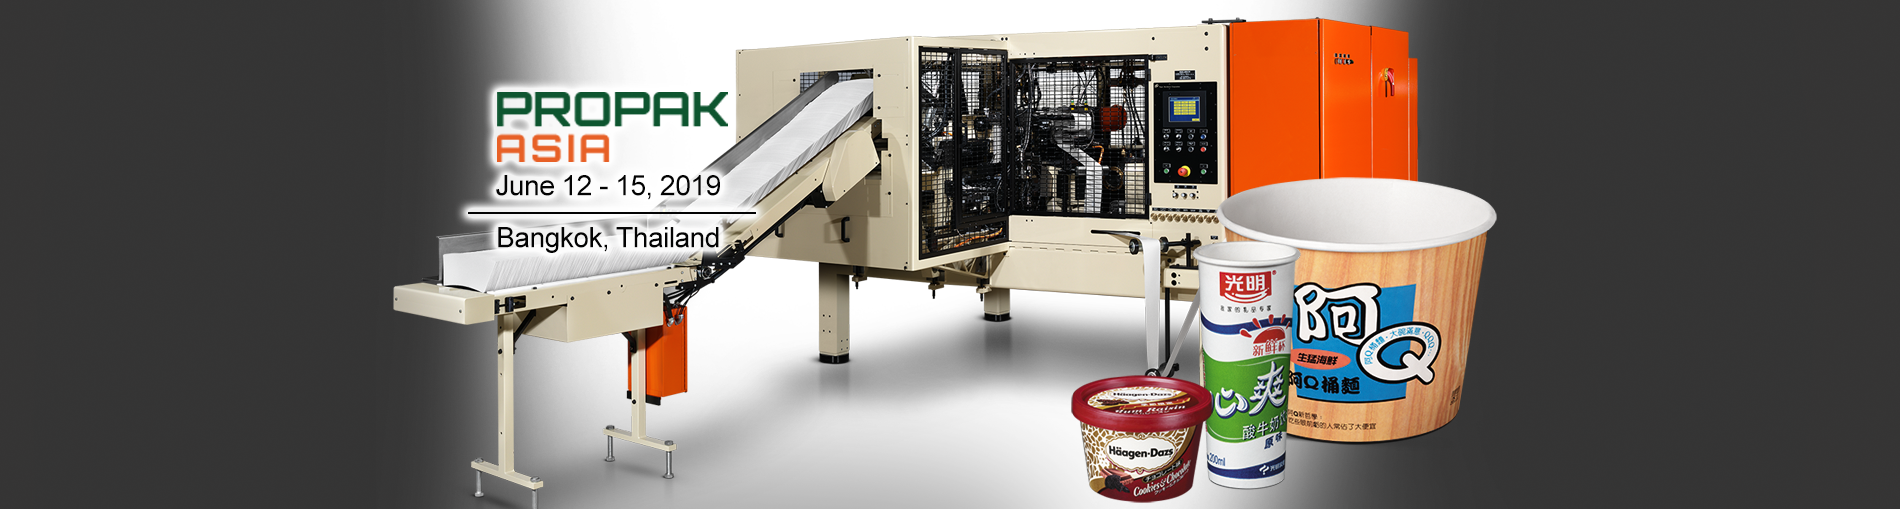 Paper Machinery Corporation (PMC) will exhibit at ProPak Asia 2019 from June 12 -15 in Bangkok, Thailand — booth AX25 in Hall 100.